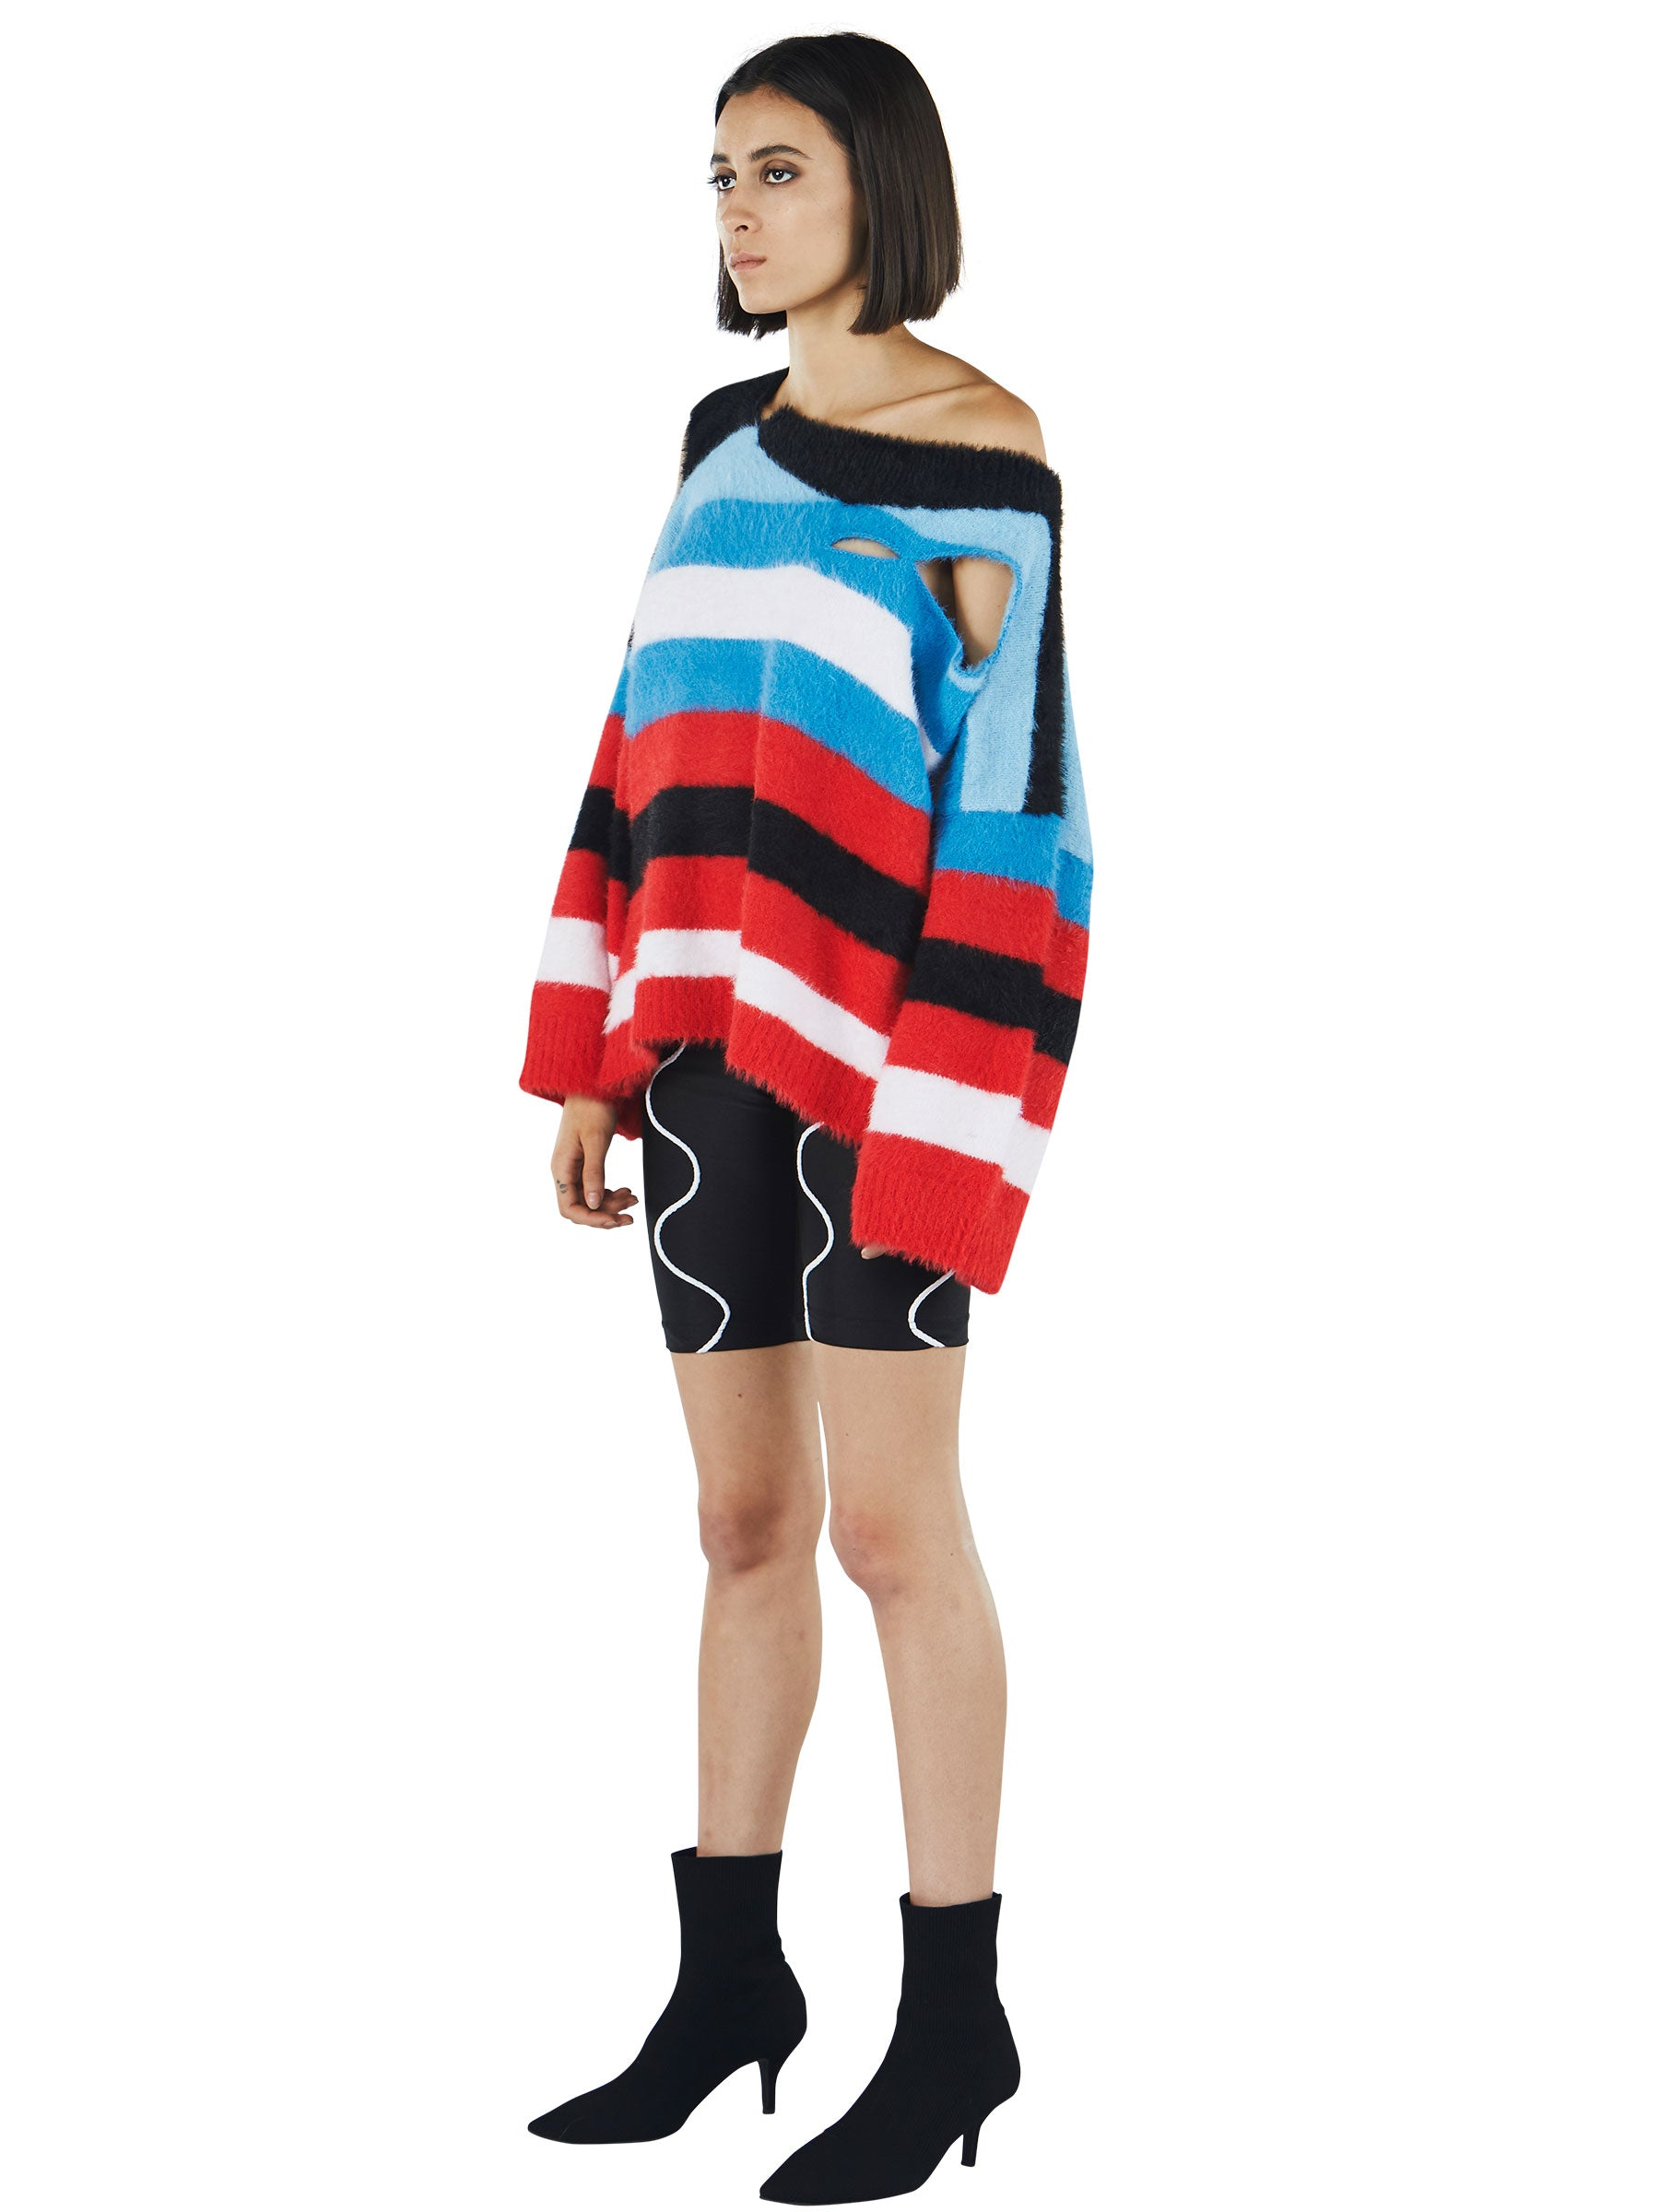 odd92 Charles Jeffrey Loverboy Fall/Winter 2019 Unisex Knitwear Wild Things Sweater - 4